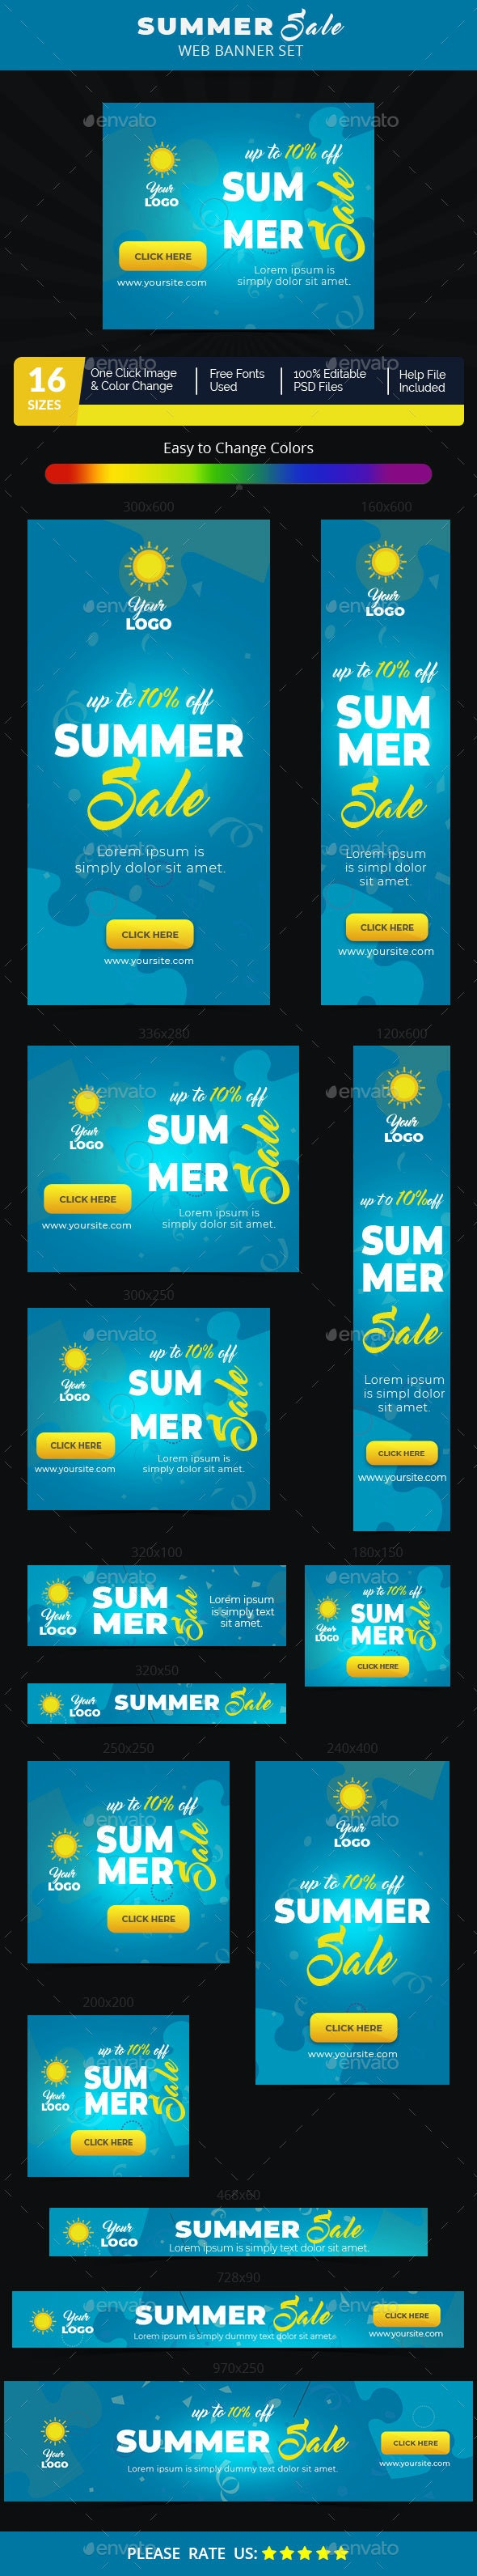 Summer Sale Web Banner Set - Banners & Ads Web Elements